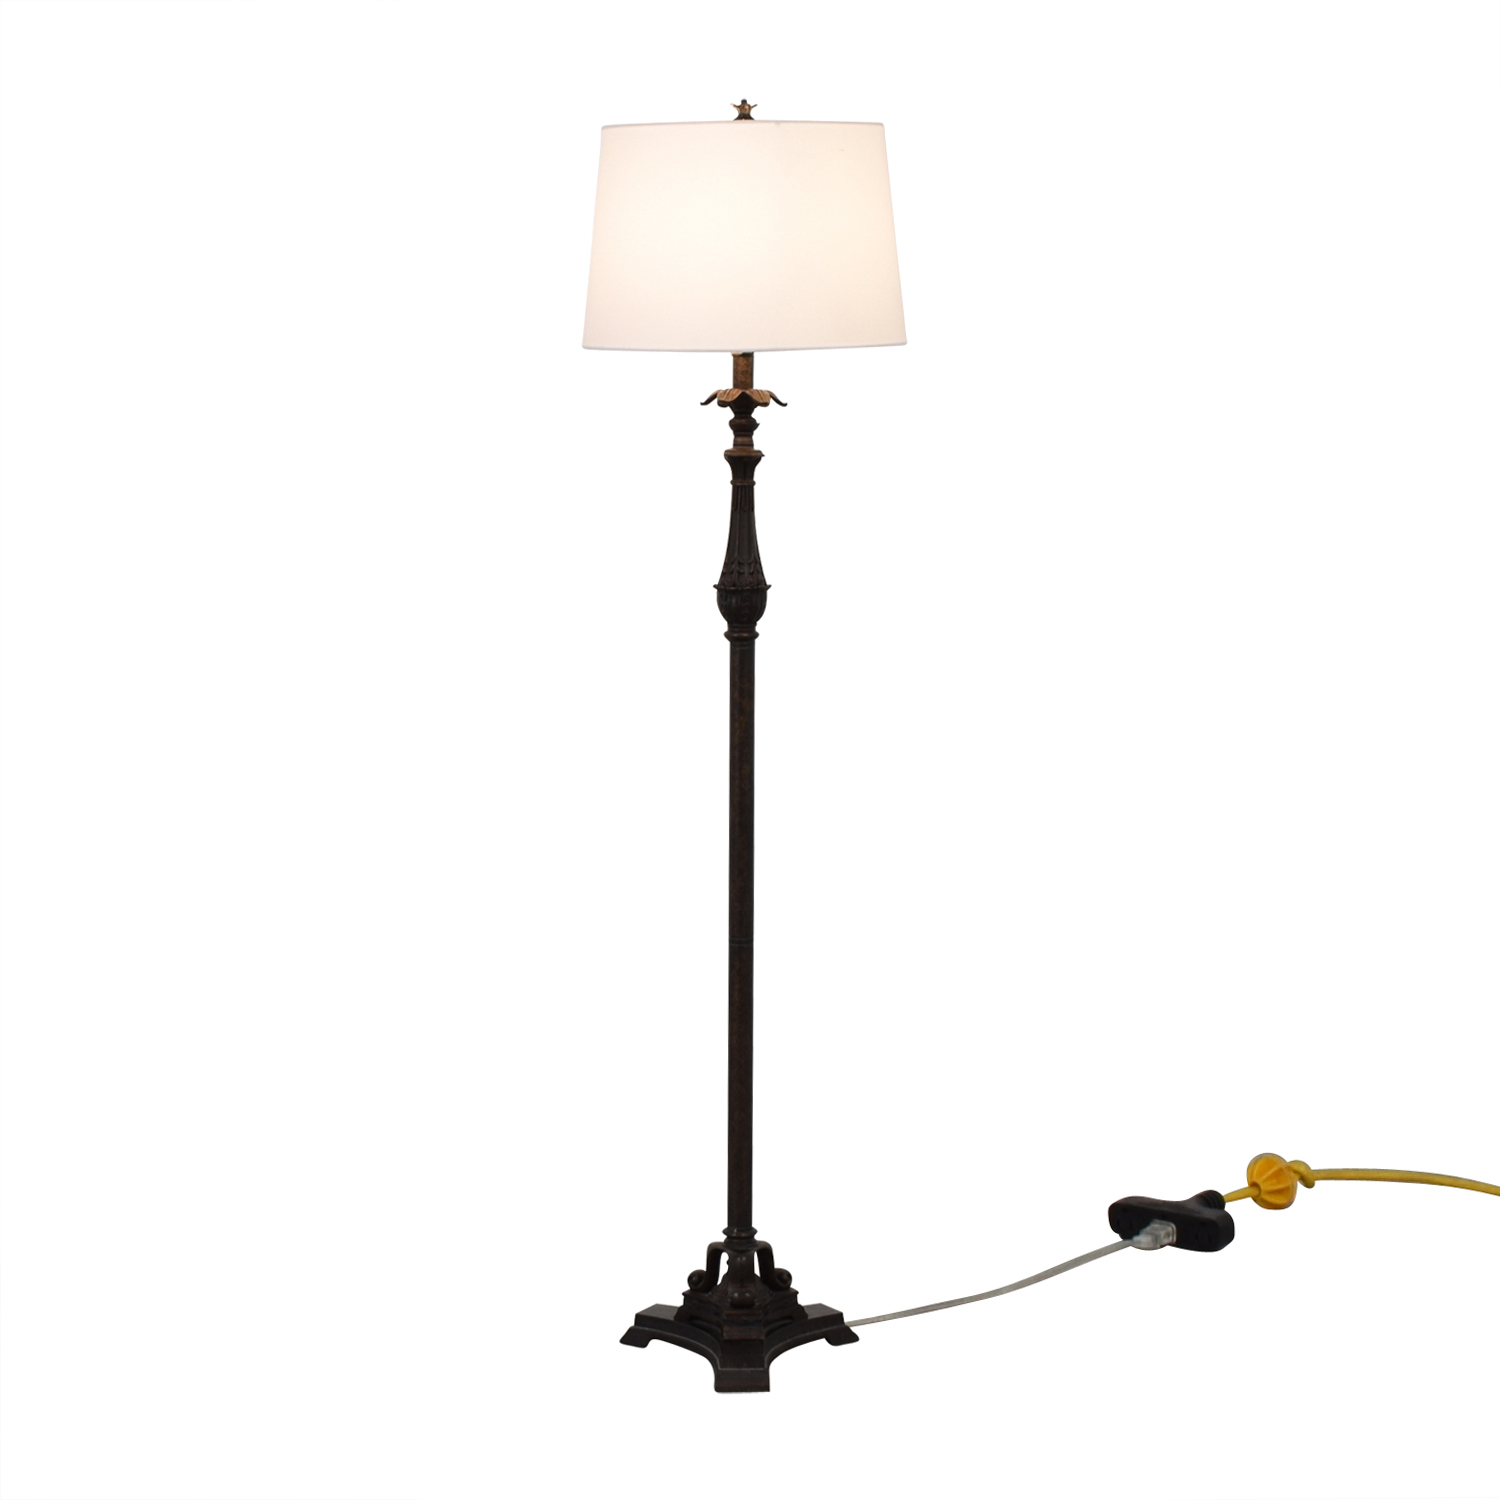 buy Rustic Floor Lamp  Decor